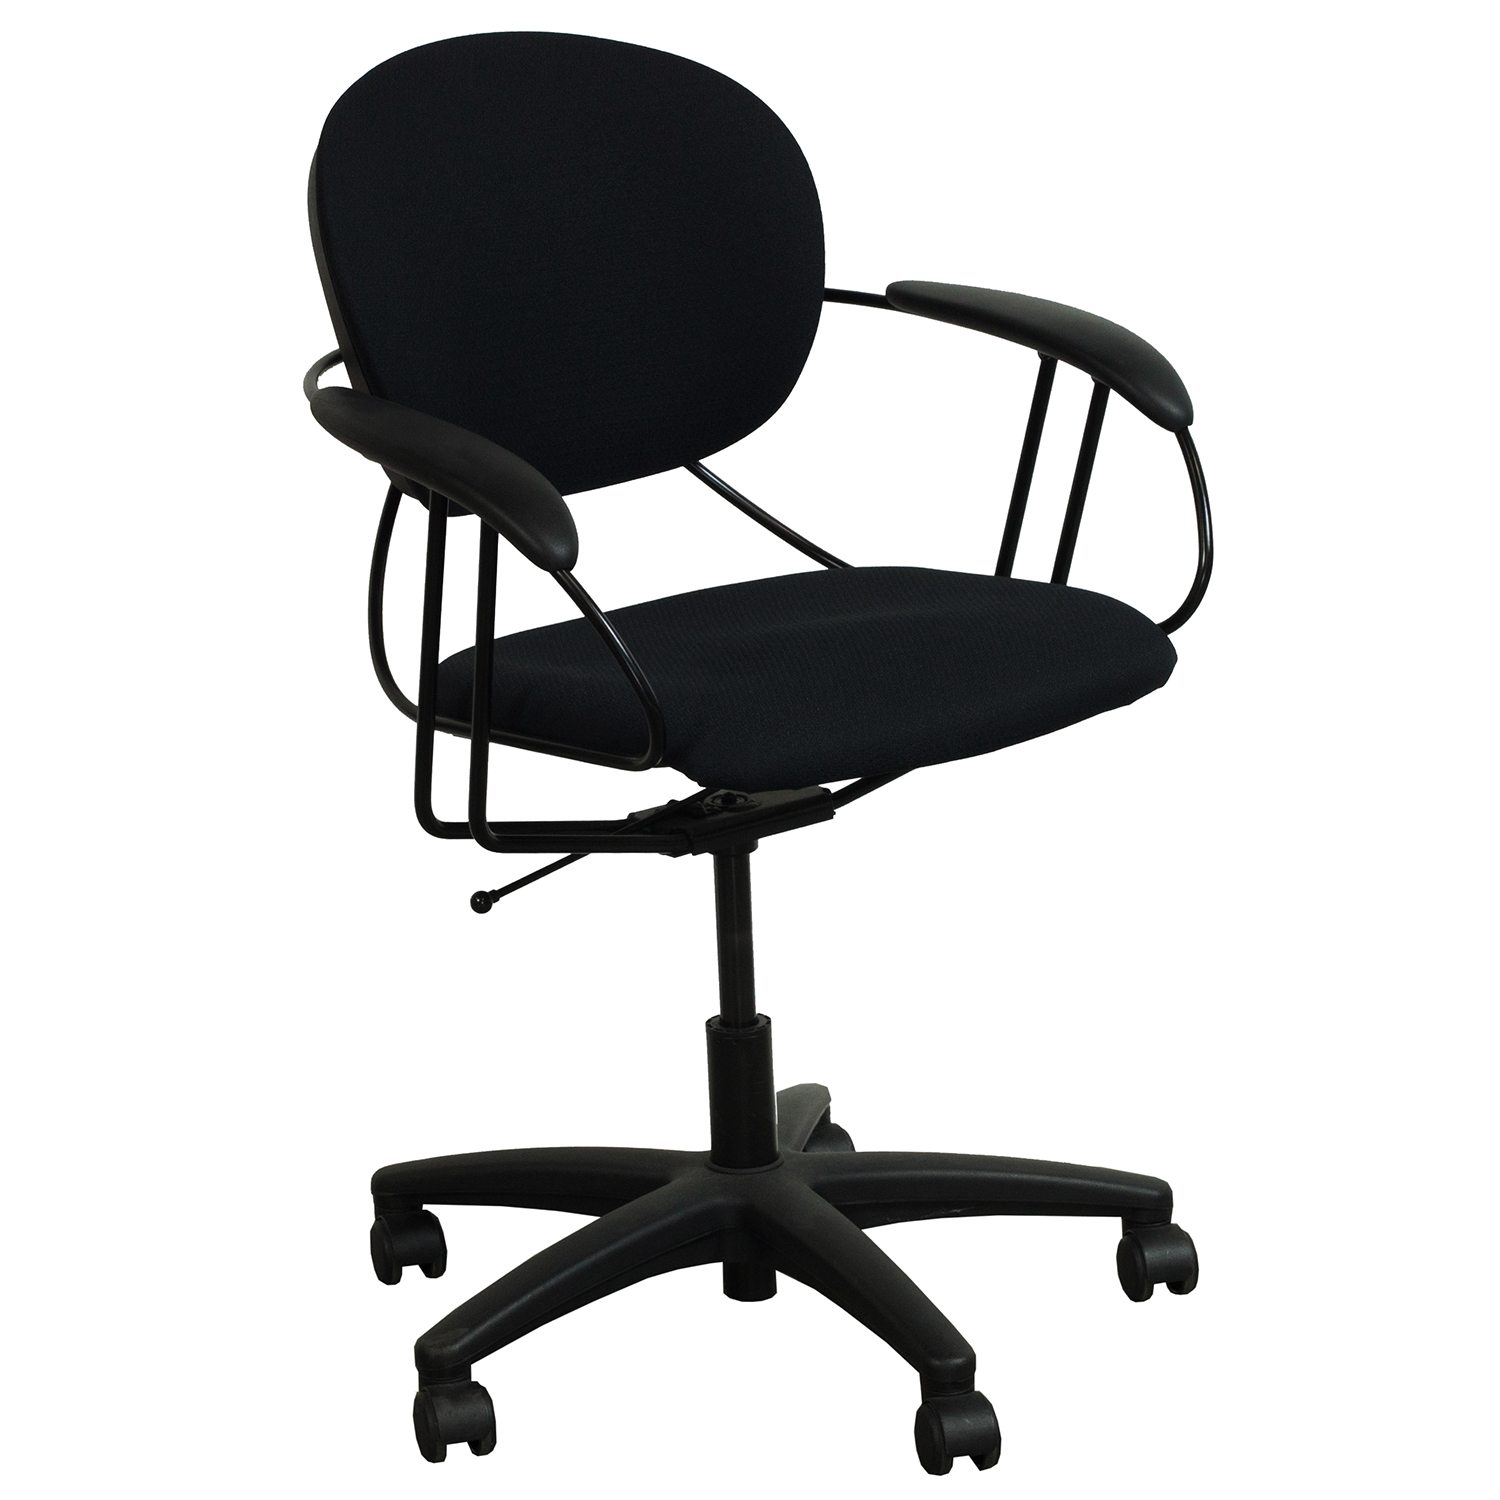 Steelcase Chairs Steelcase Uno Used Conference Chair Black National